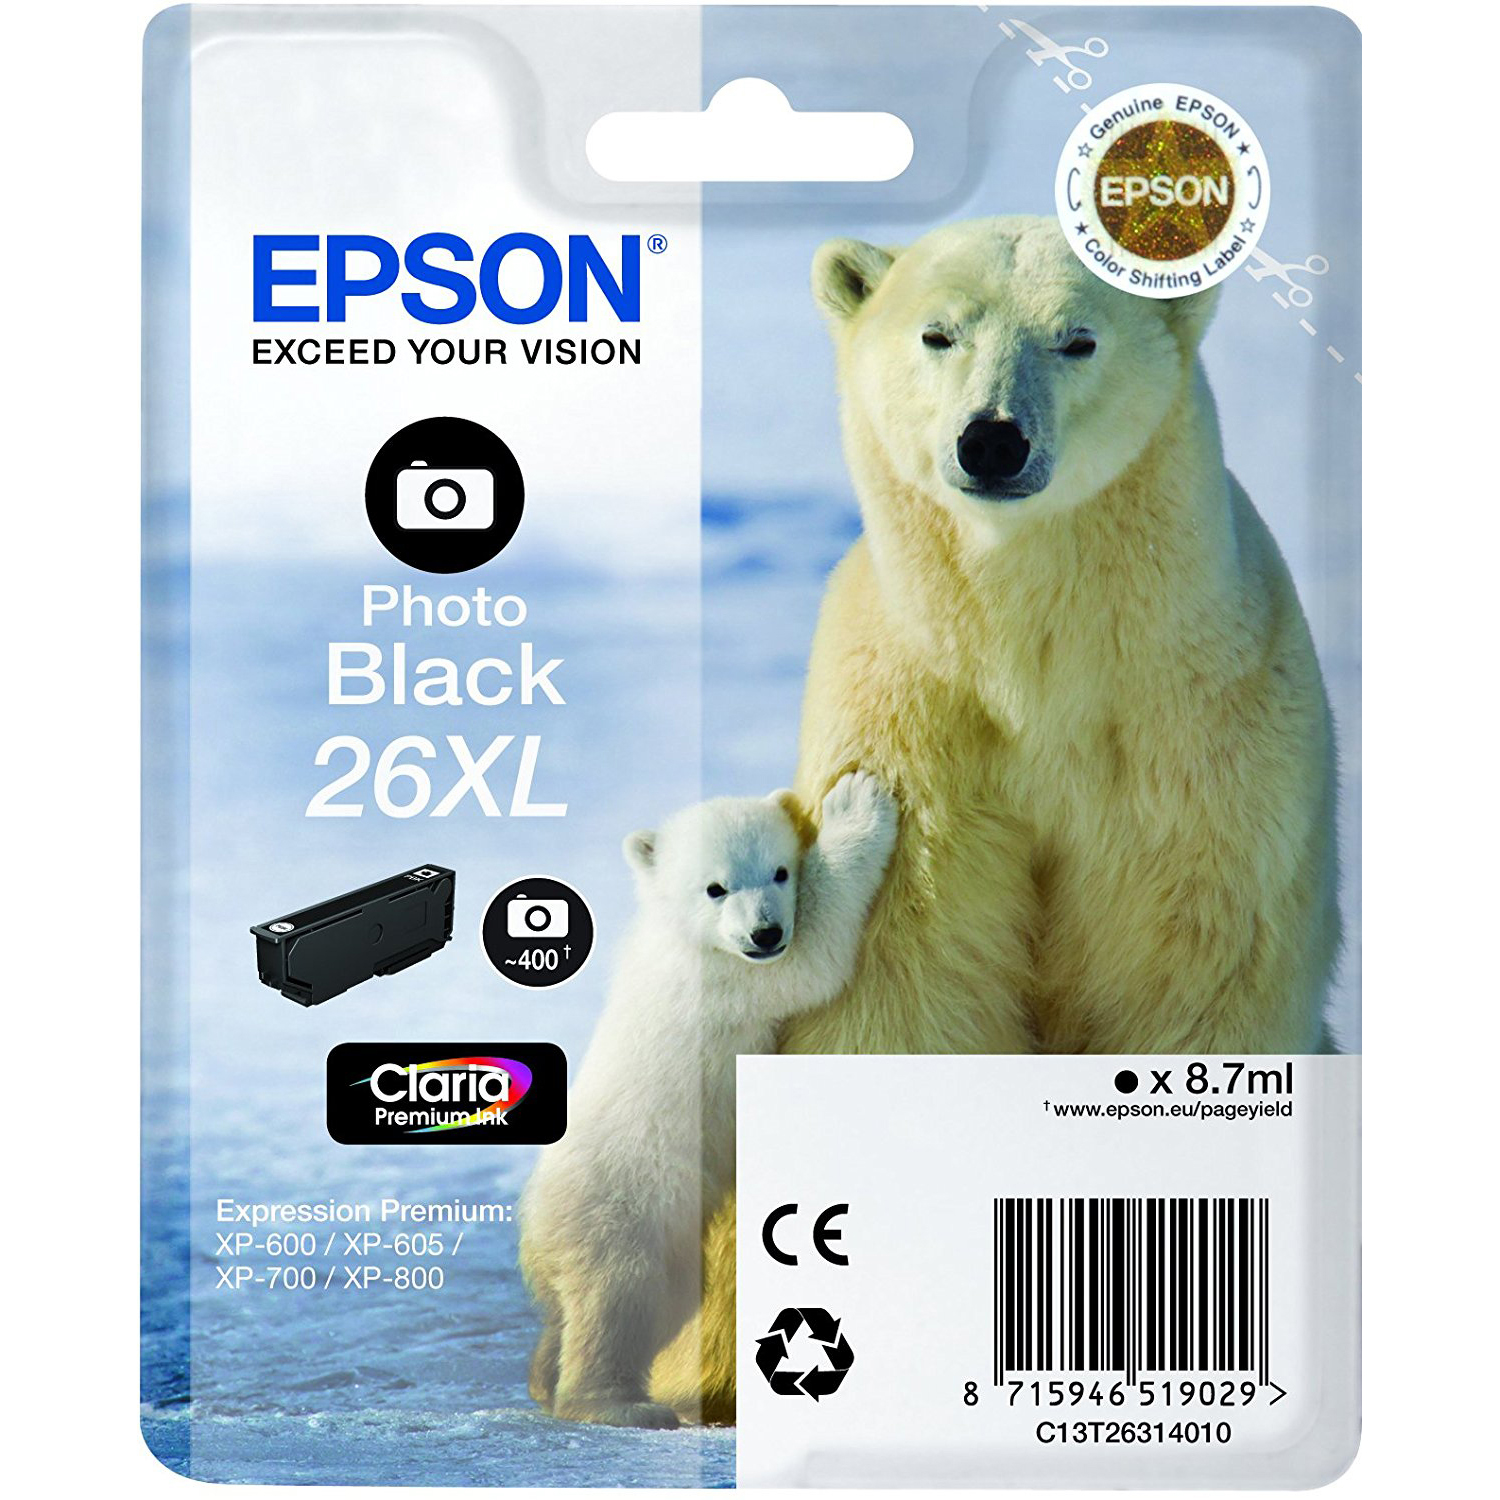 Original Epson 26XL Photo Black High Capacity Ink Cartridge (C13T26314012)